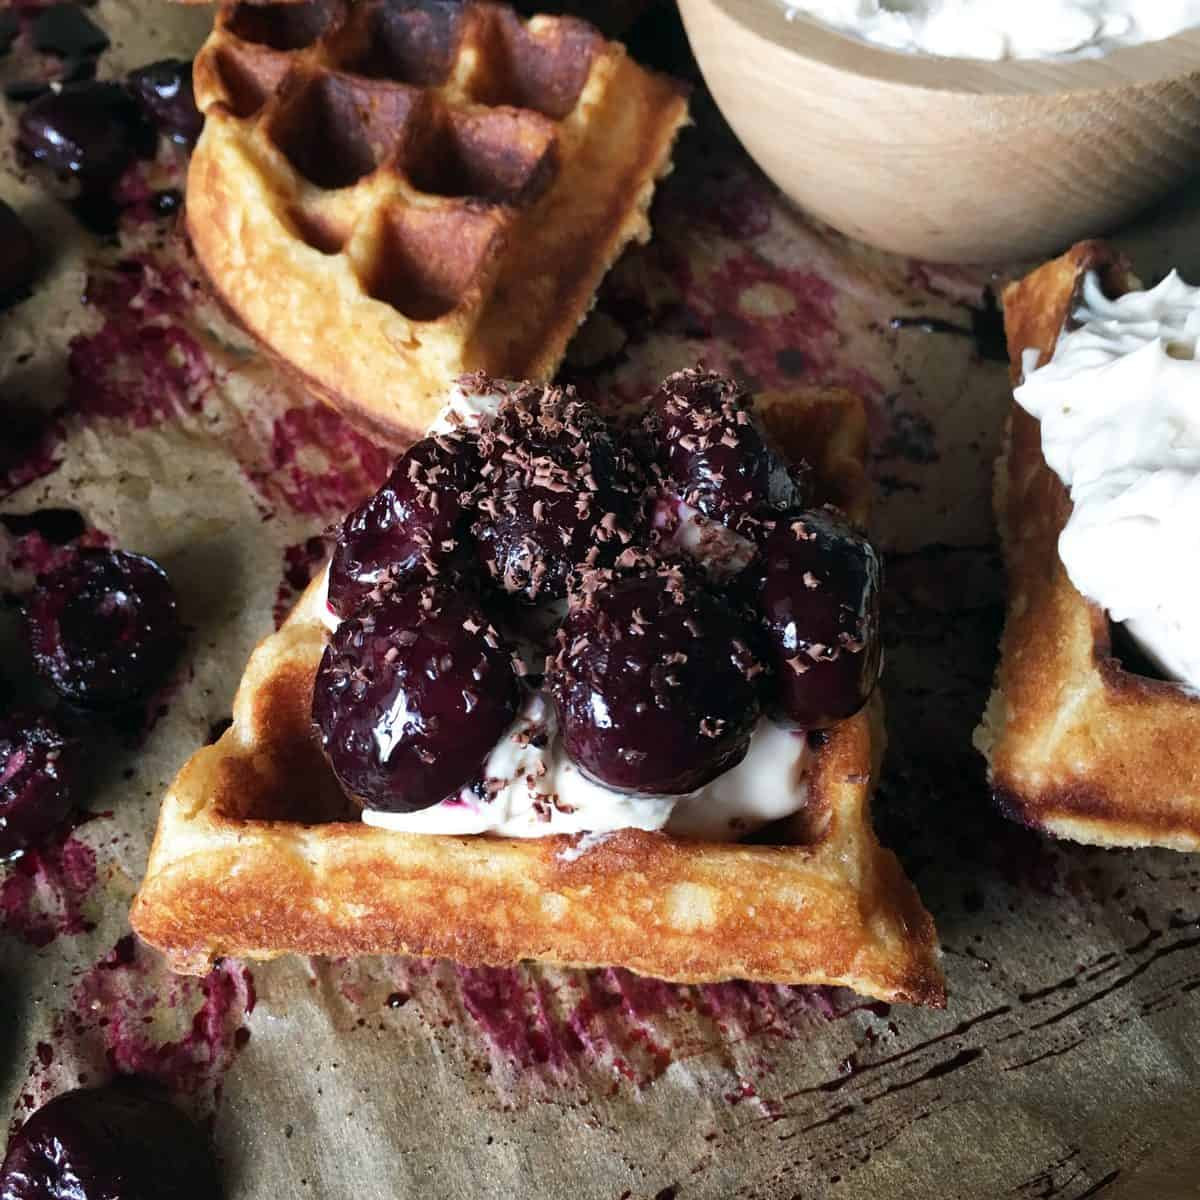 Roasted Cherries & Mascarpone Ricotta Whipped Cream